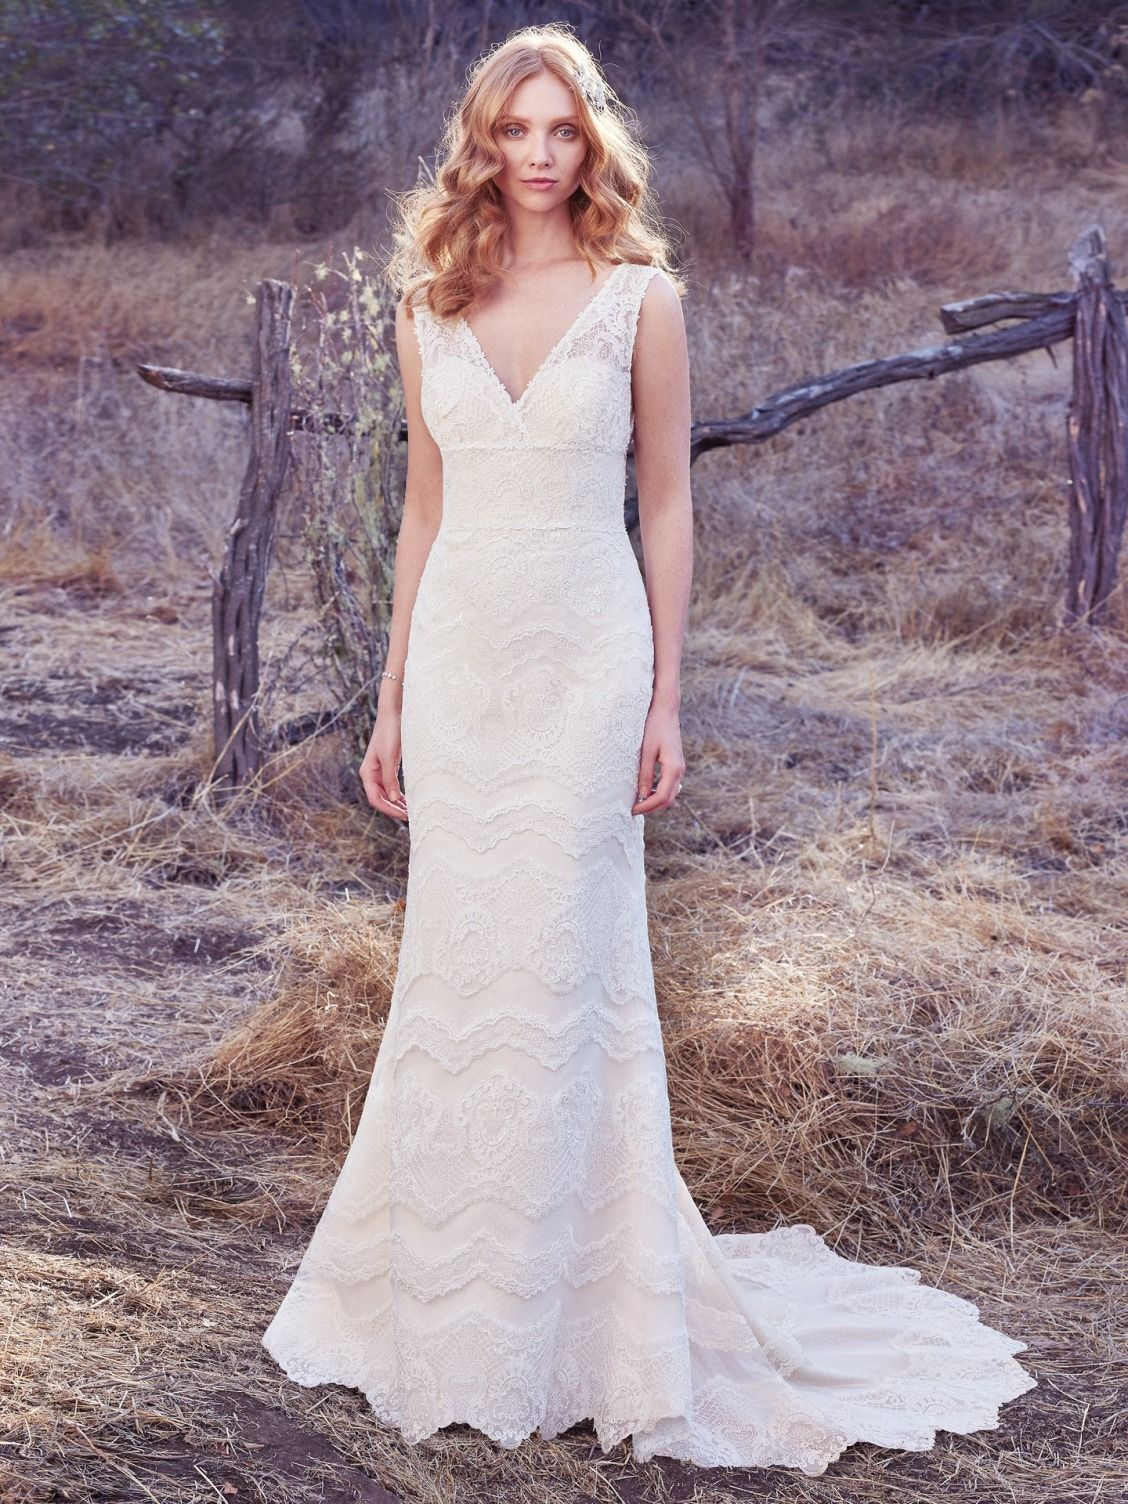 Maggie Sottero Wedding Dresses In 2019 Wedding Gown